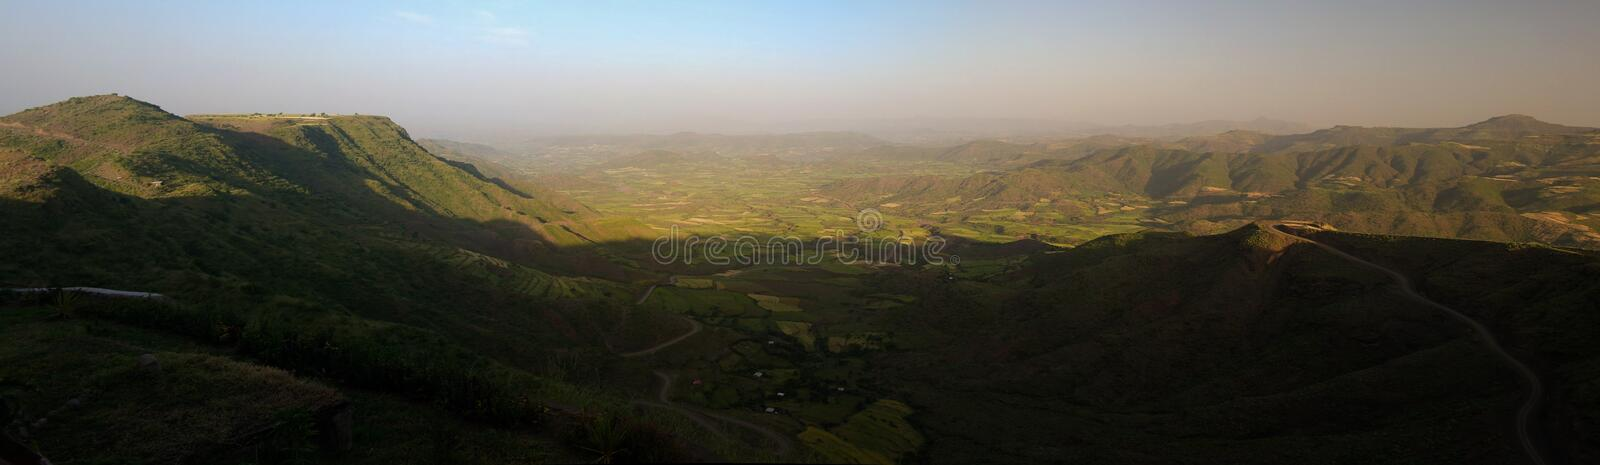 Panorama of Semien mountains and valley around Lalibela Ethiopia. Panorama of Semien mountains and valley around Lalibela, Ethiopia stock photo